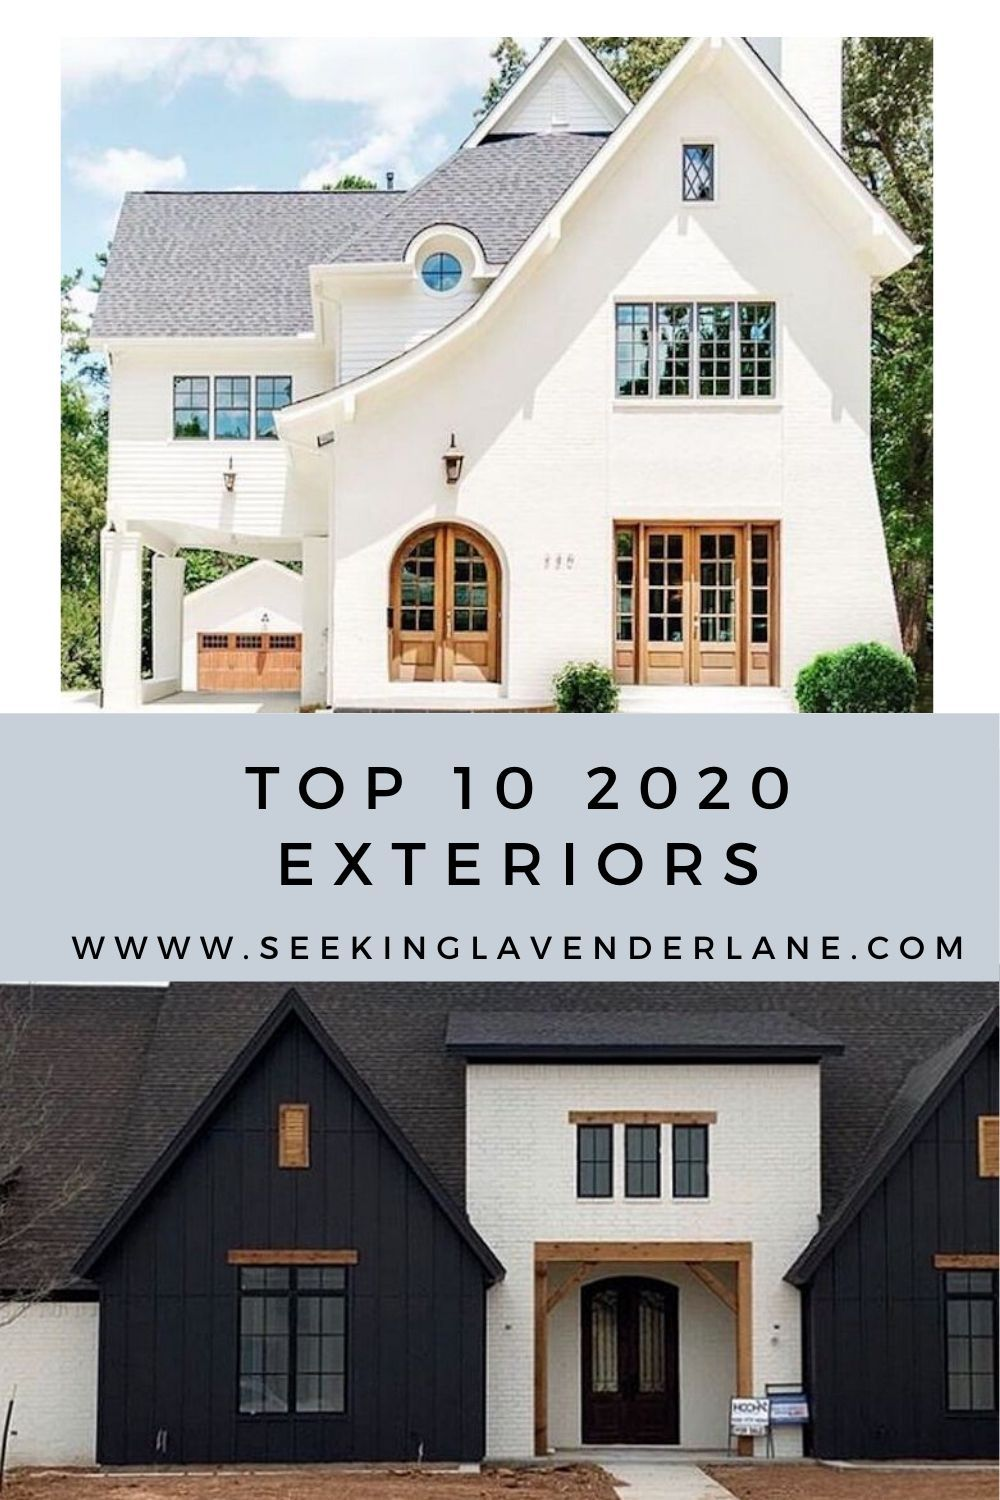 Top 10 Exterior Finishes In 2020 Seeking Lavender Lane In 2020 Modern Farmhouse Exterior House Paint Exterior White Exterior Houses